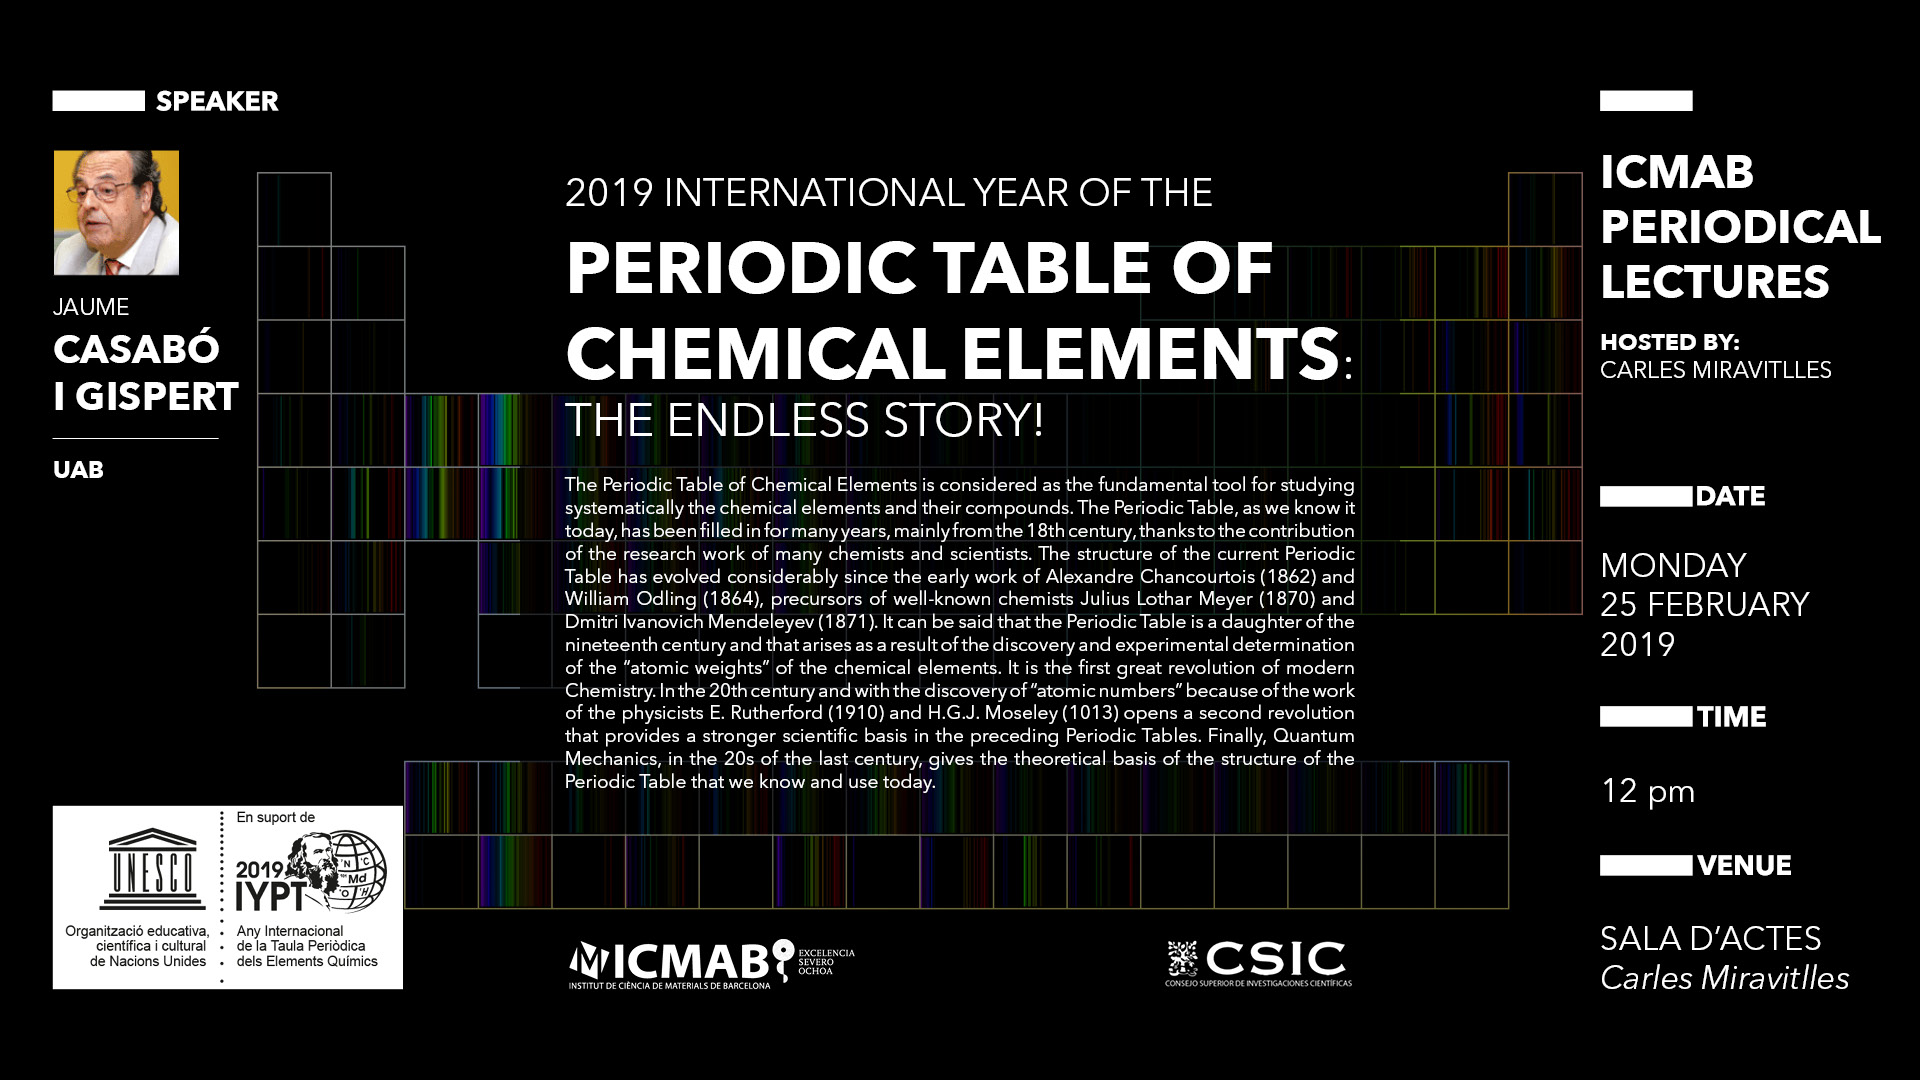 2019 International Year Of The Periodic Table Of Chemical Elements